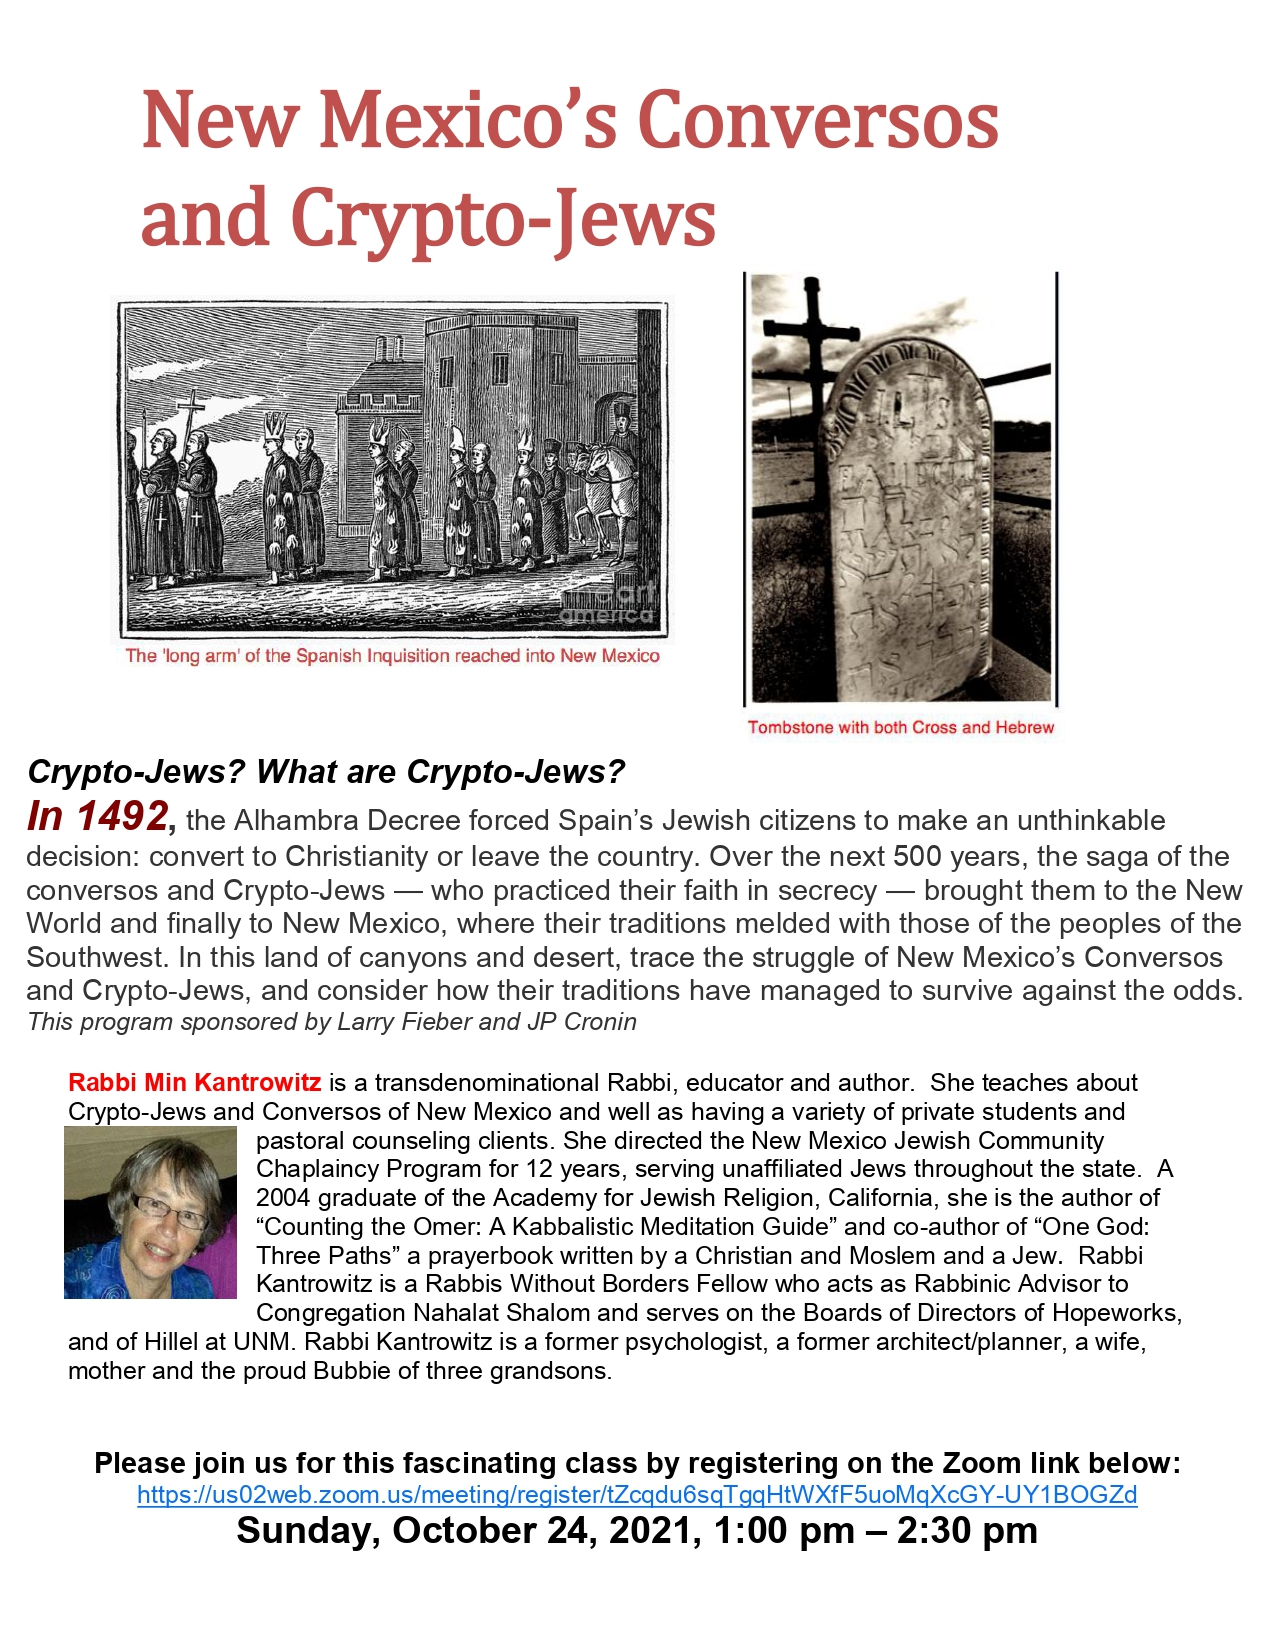 Banner Image for New Mexico's Conversos and Crypto-Jews